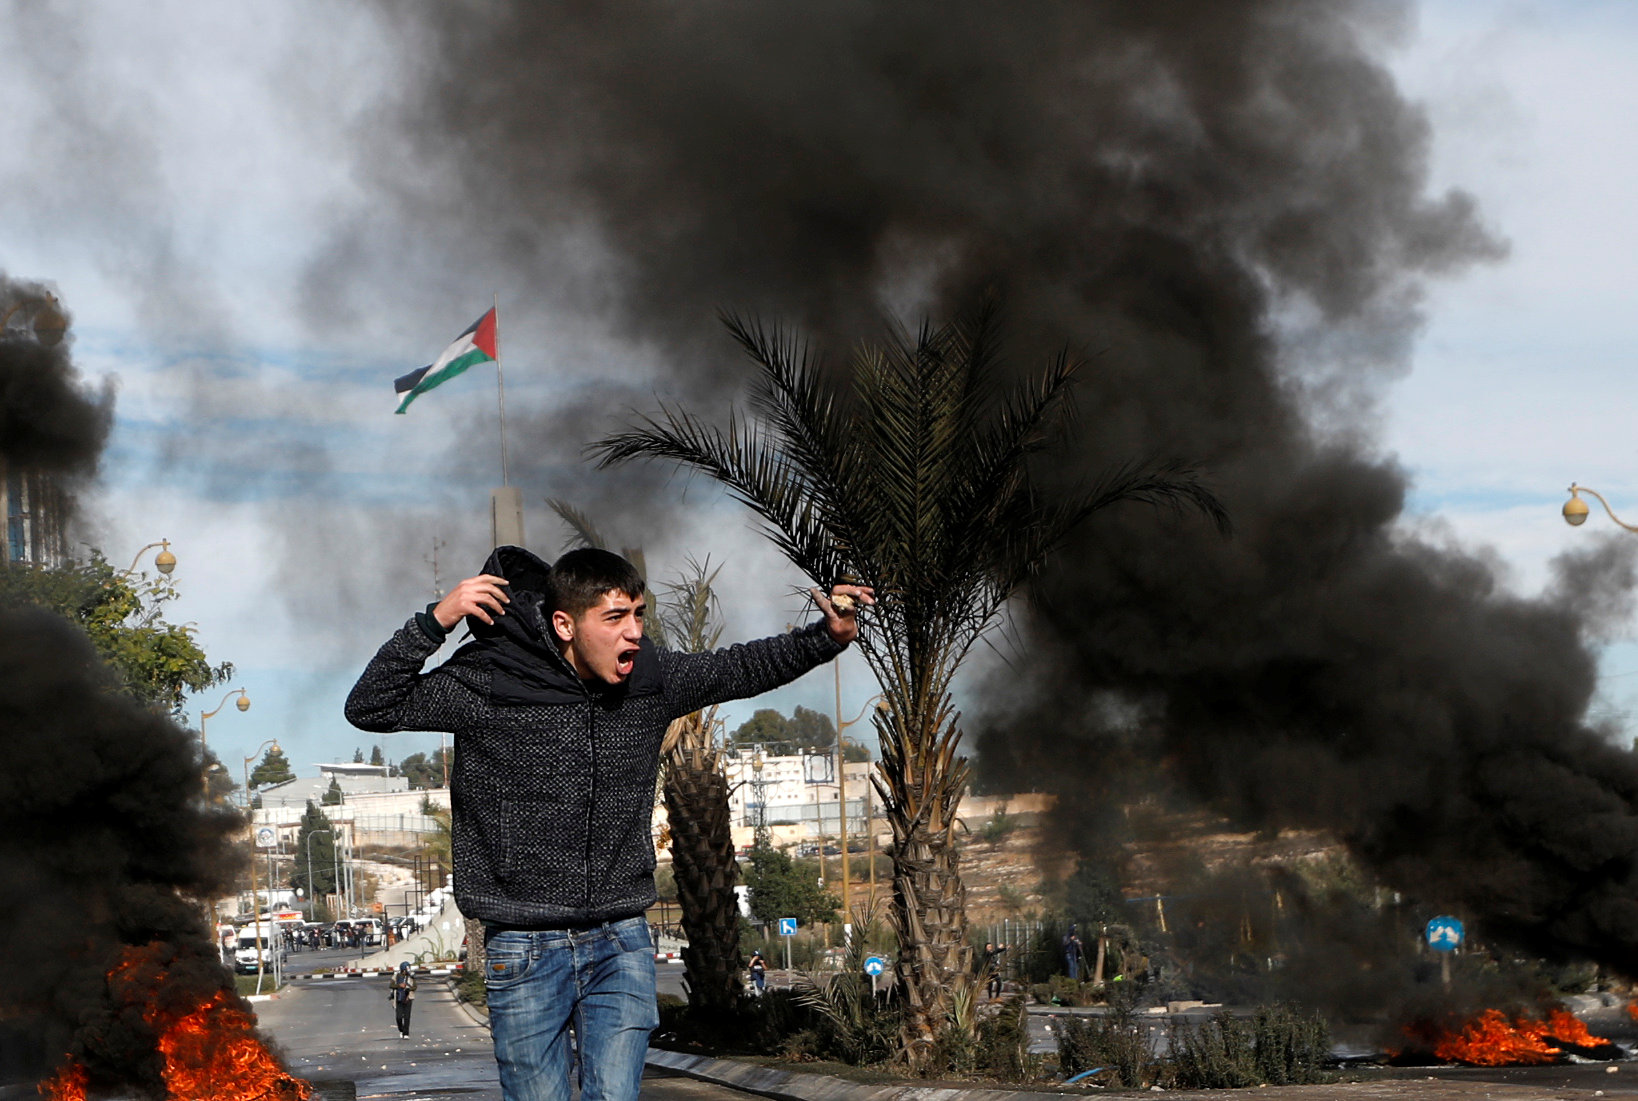 A Palestinian demonstrator shouts during clashes with Israeli troops at a protest against U.S. President Donald Trump's decision to recognize Jerusalem as the capital of Israel, near the Jewish settlement of Beit El, near the West Bank city of Ramallah December 11, 2017.